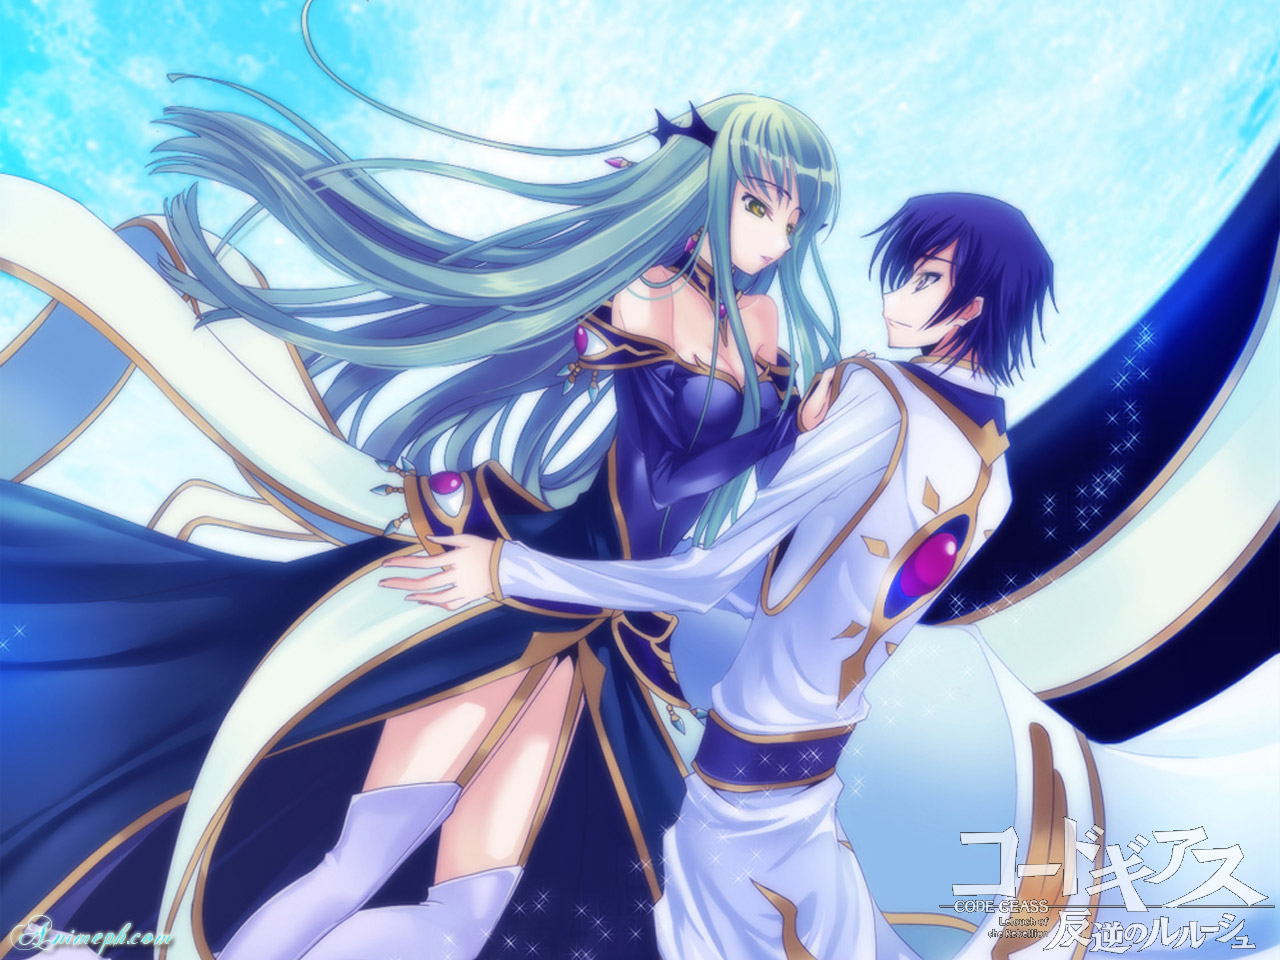 Love couple Wallpaper With Name : cute Anime couple Wallpaper - WallpaperSafari